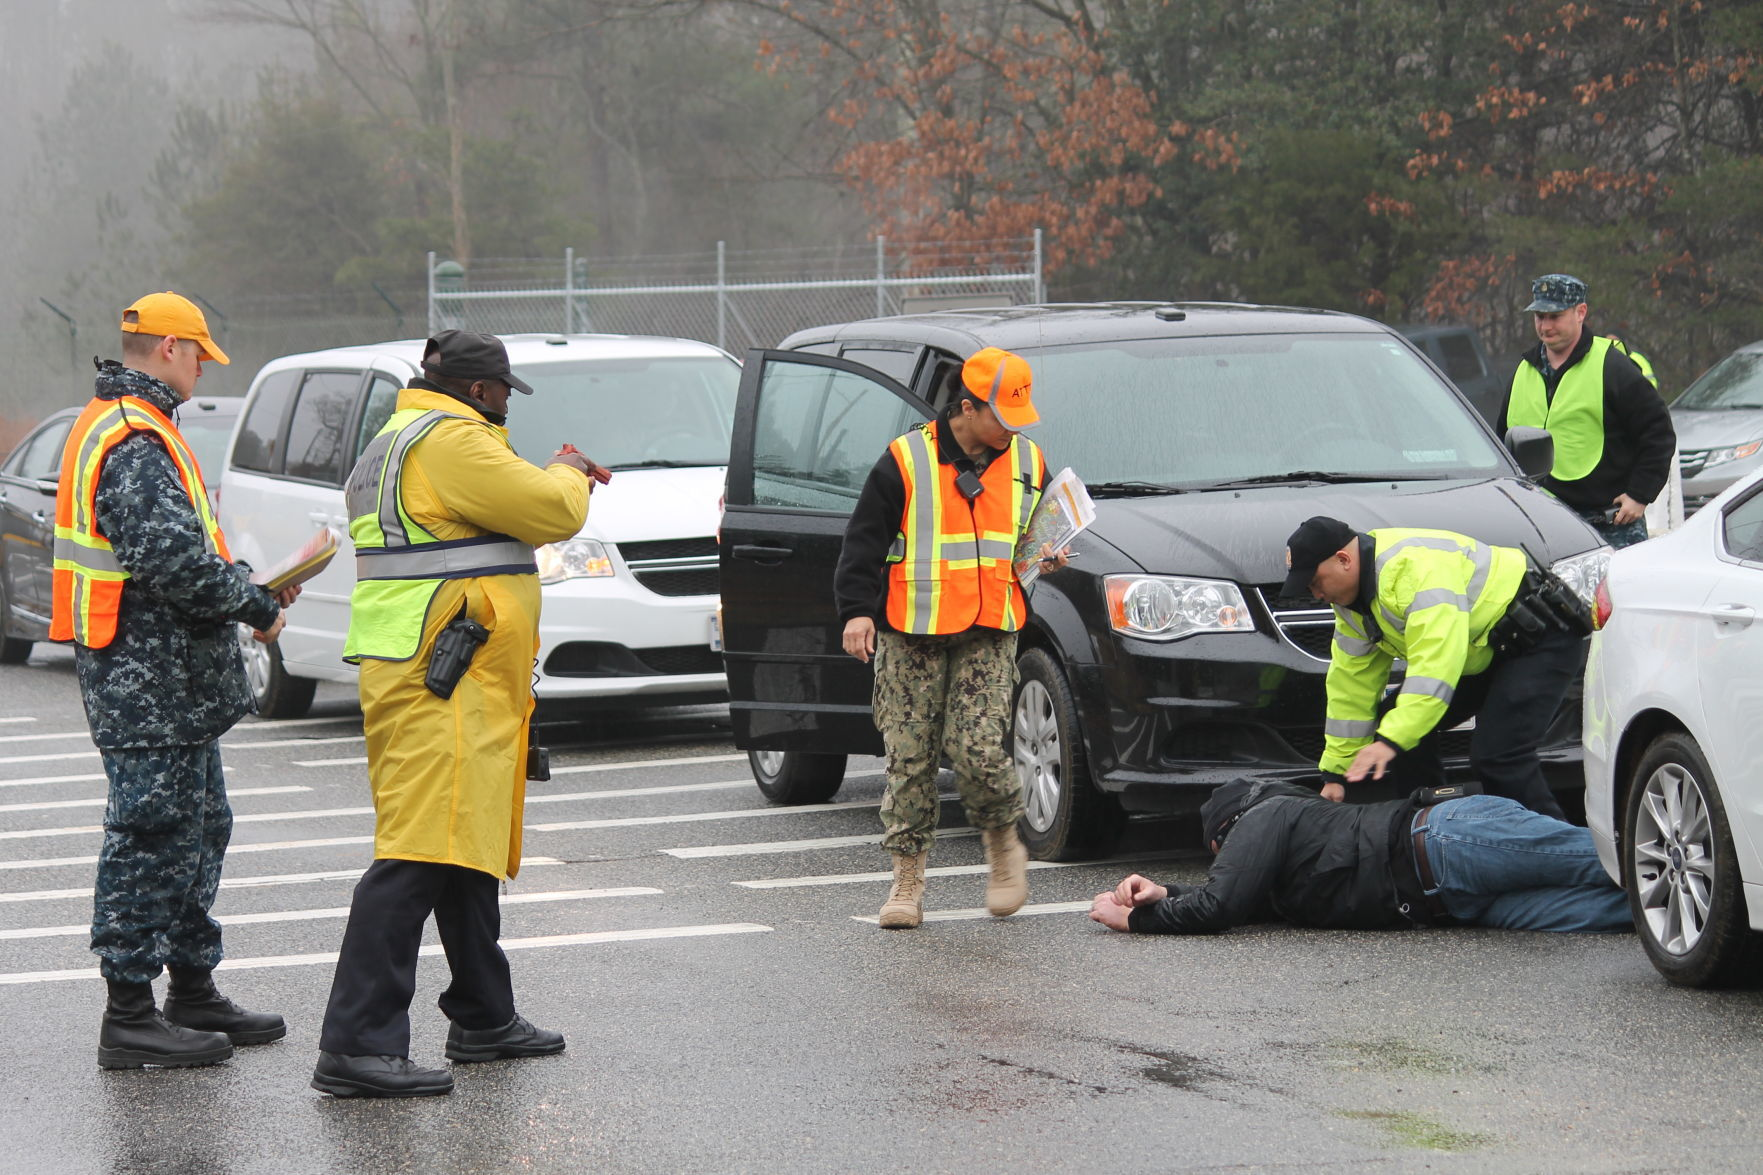 Active shooter patuxent